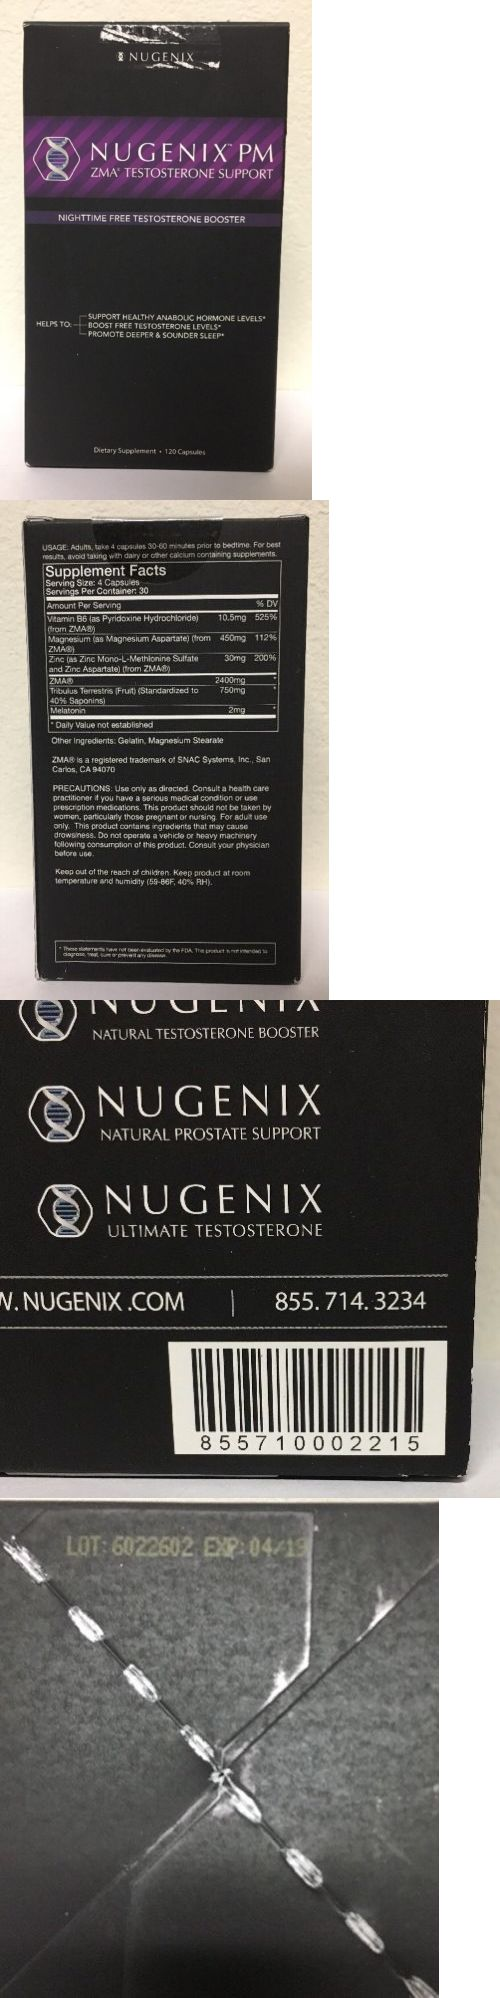 Other Vitamins and Supplements: (New) Nugenix Nugenix Pm Zma Testosterone Support - 120 Capsules -> BUY IT NOW ONLY: $33.49 on eBay!